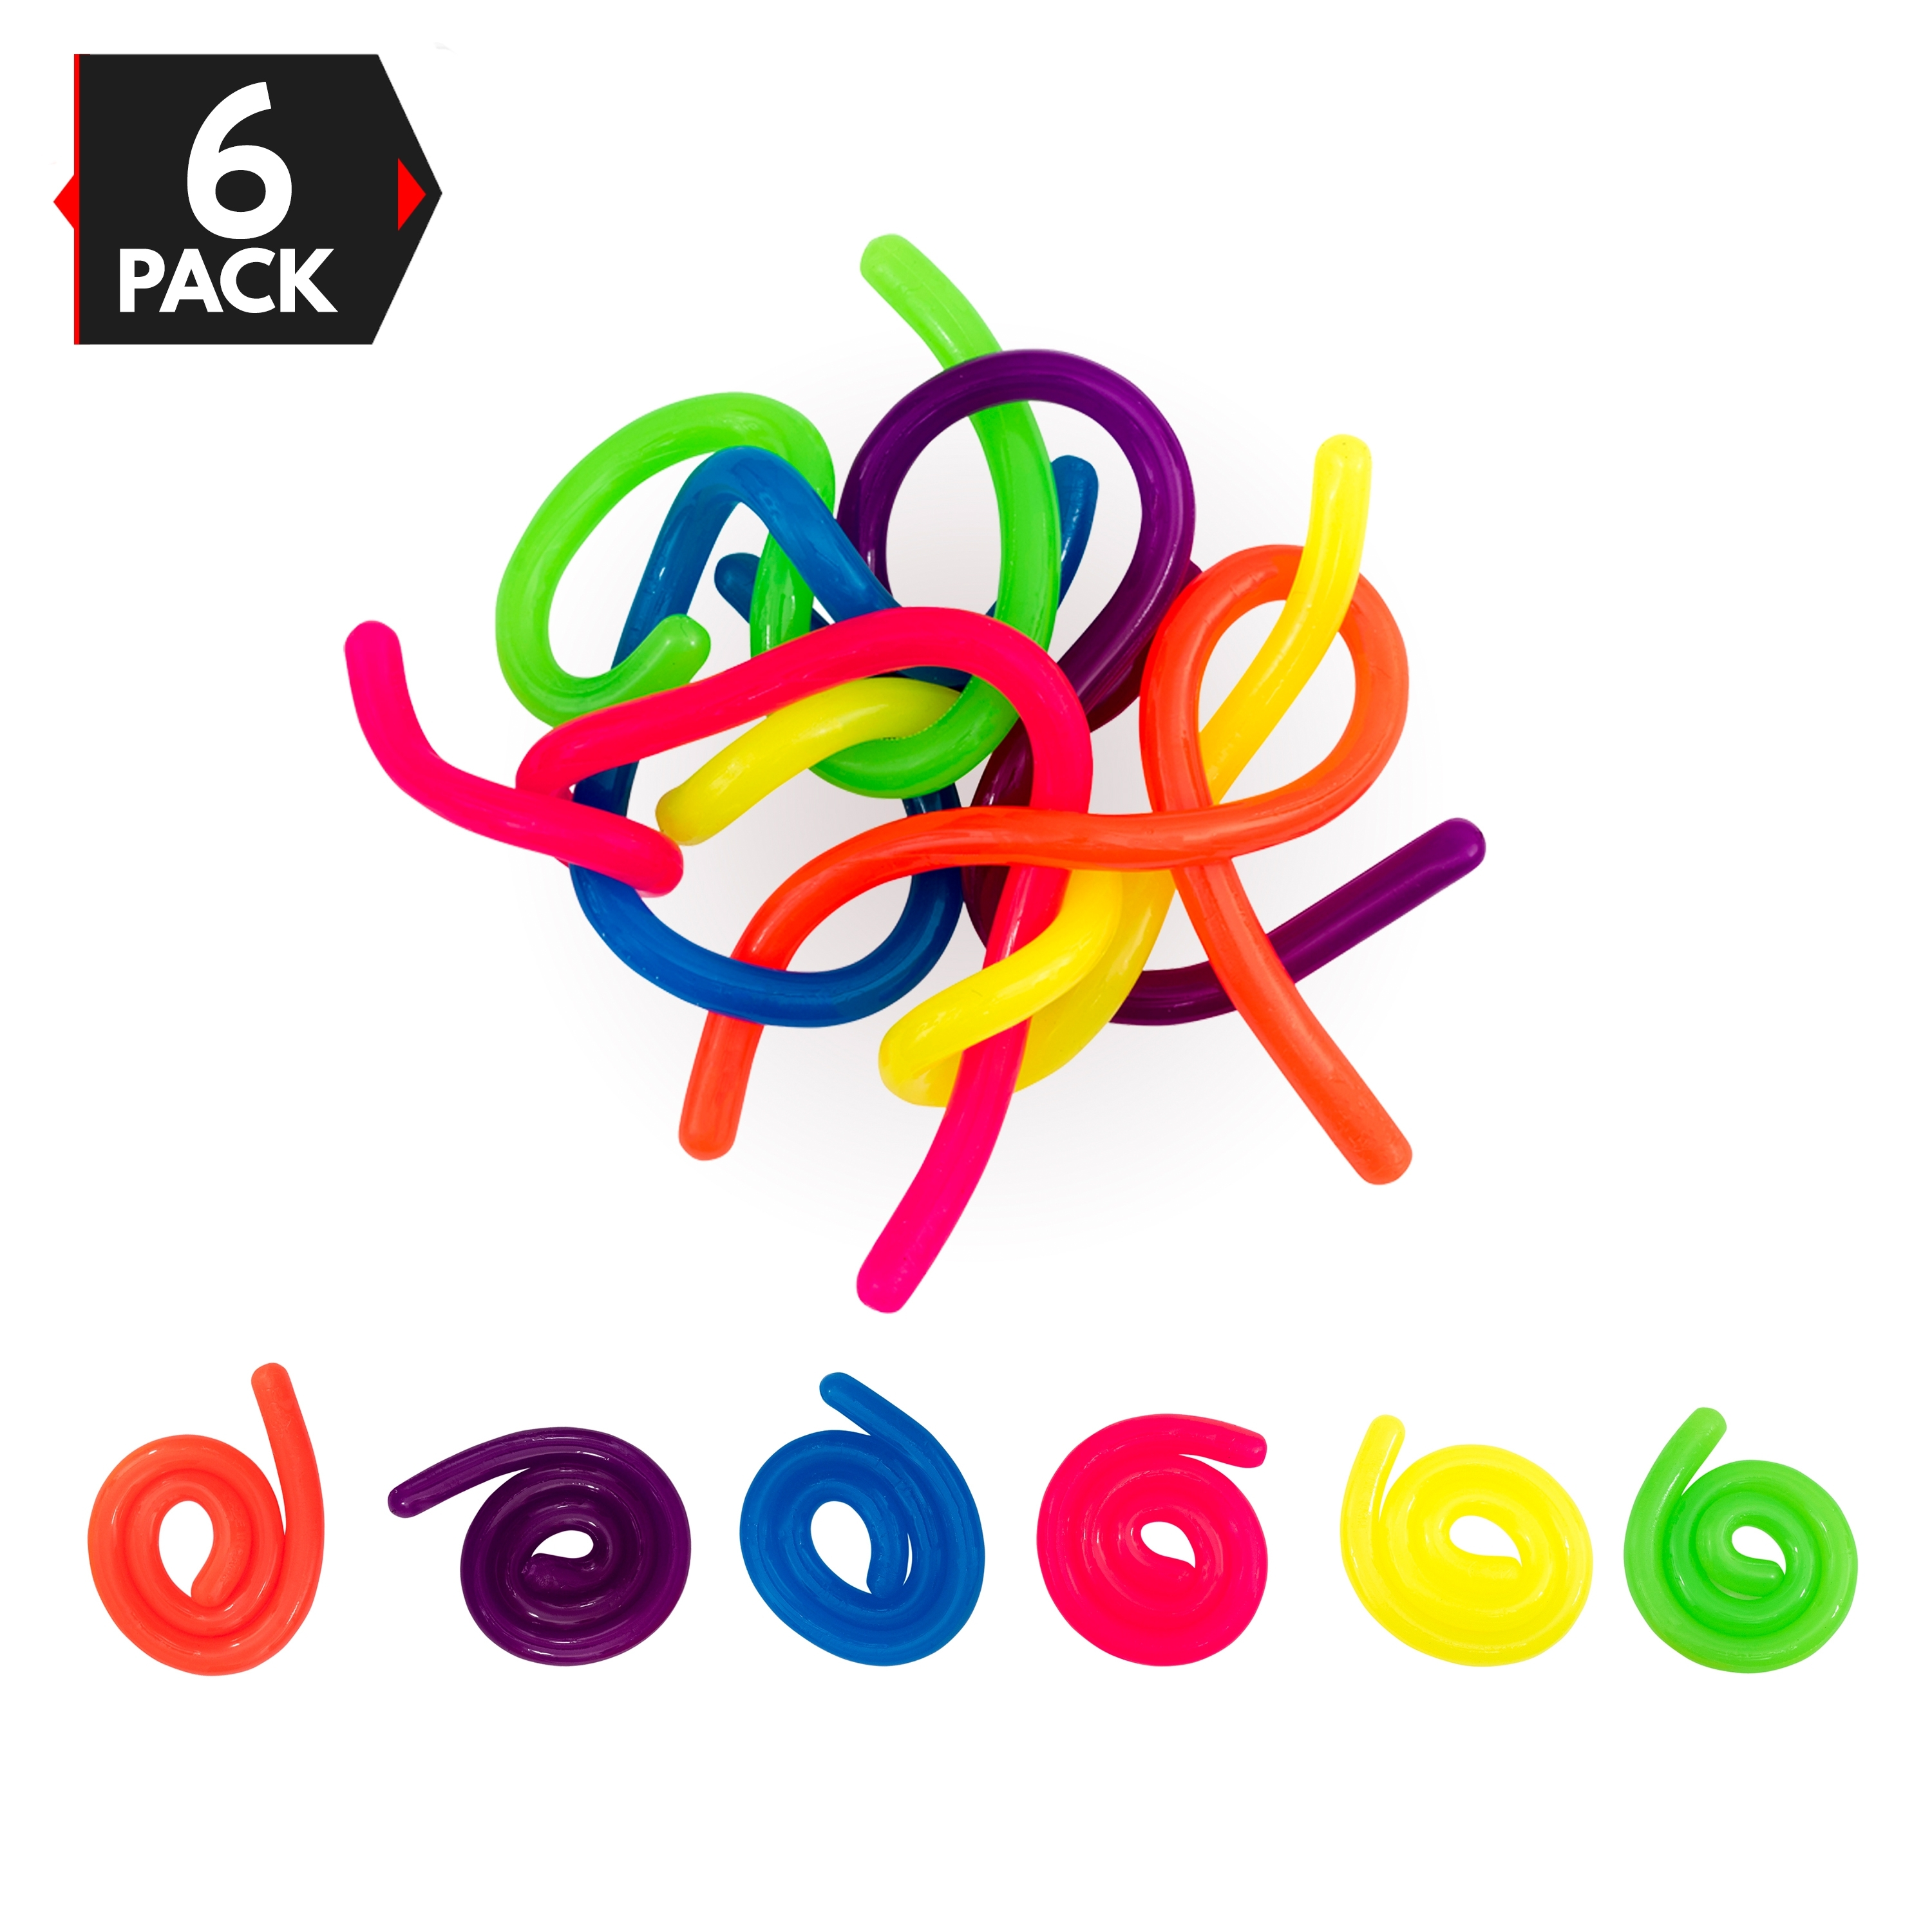 6 Neon Stretchy Strings For ADD / ADHD Stretch Toy Stress Reliever Fidget Toy